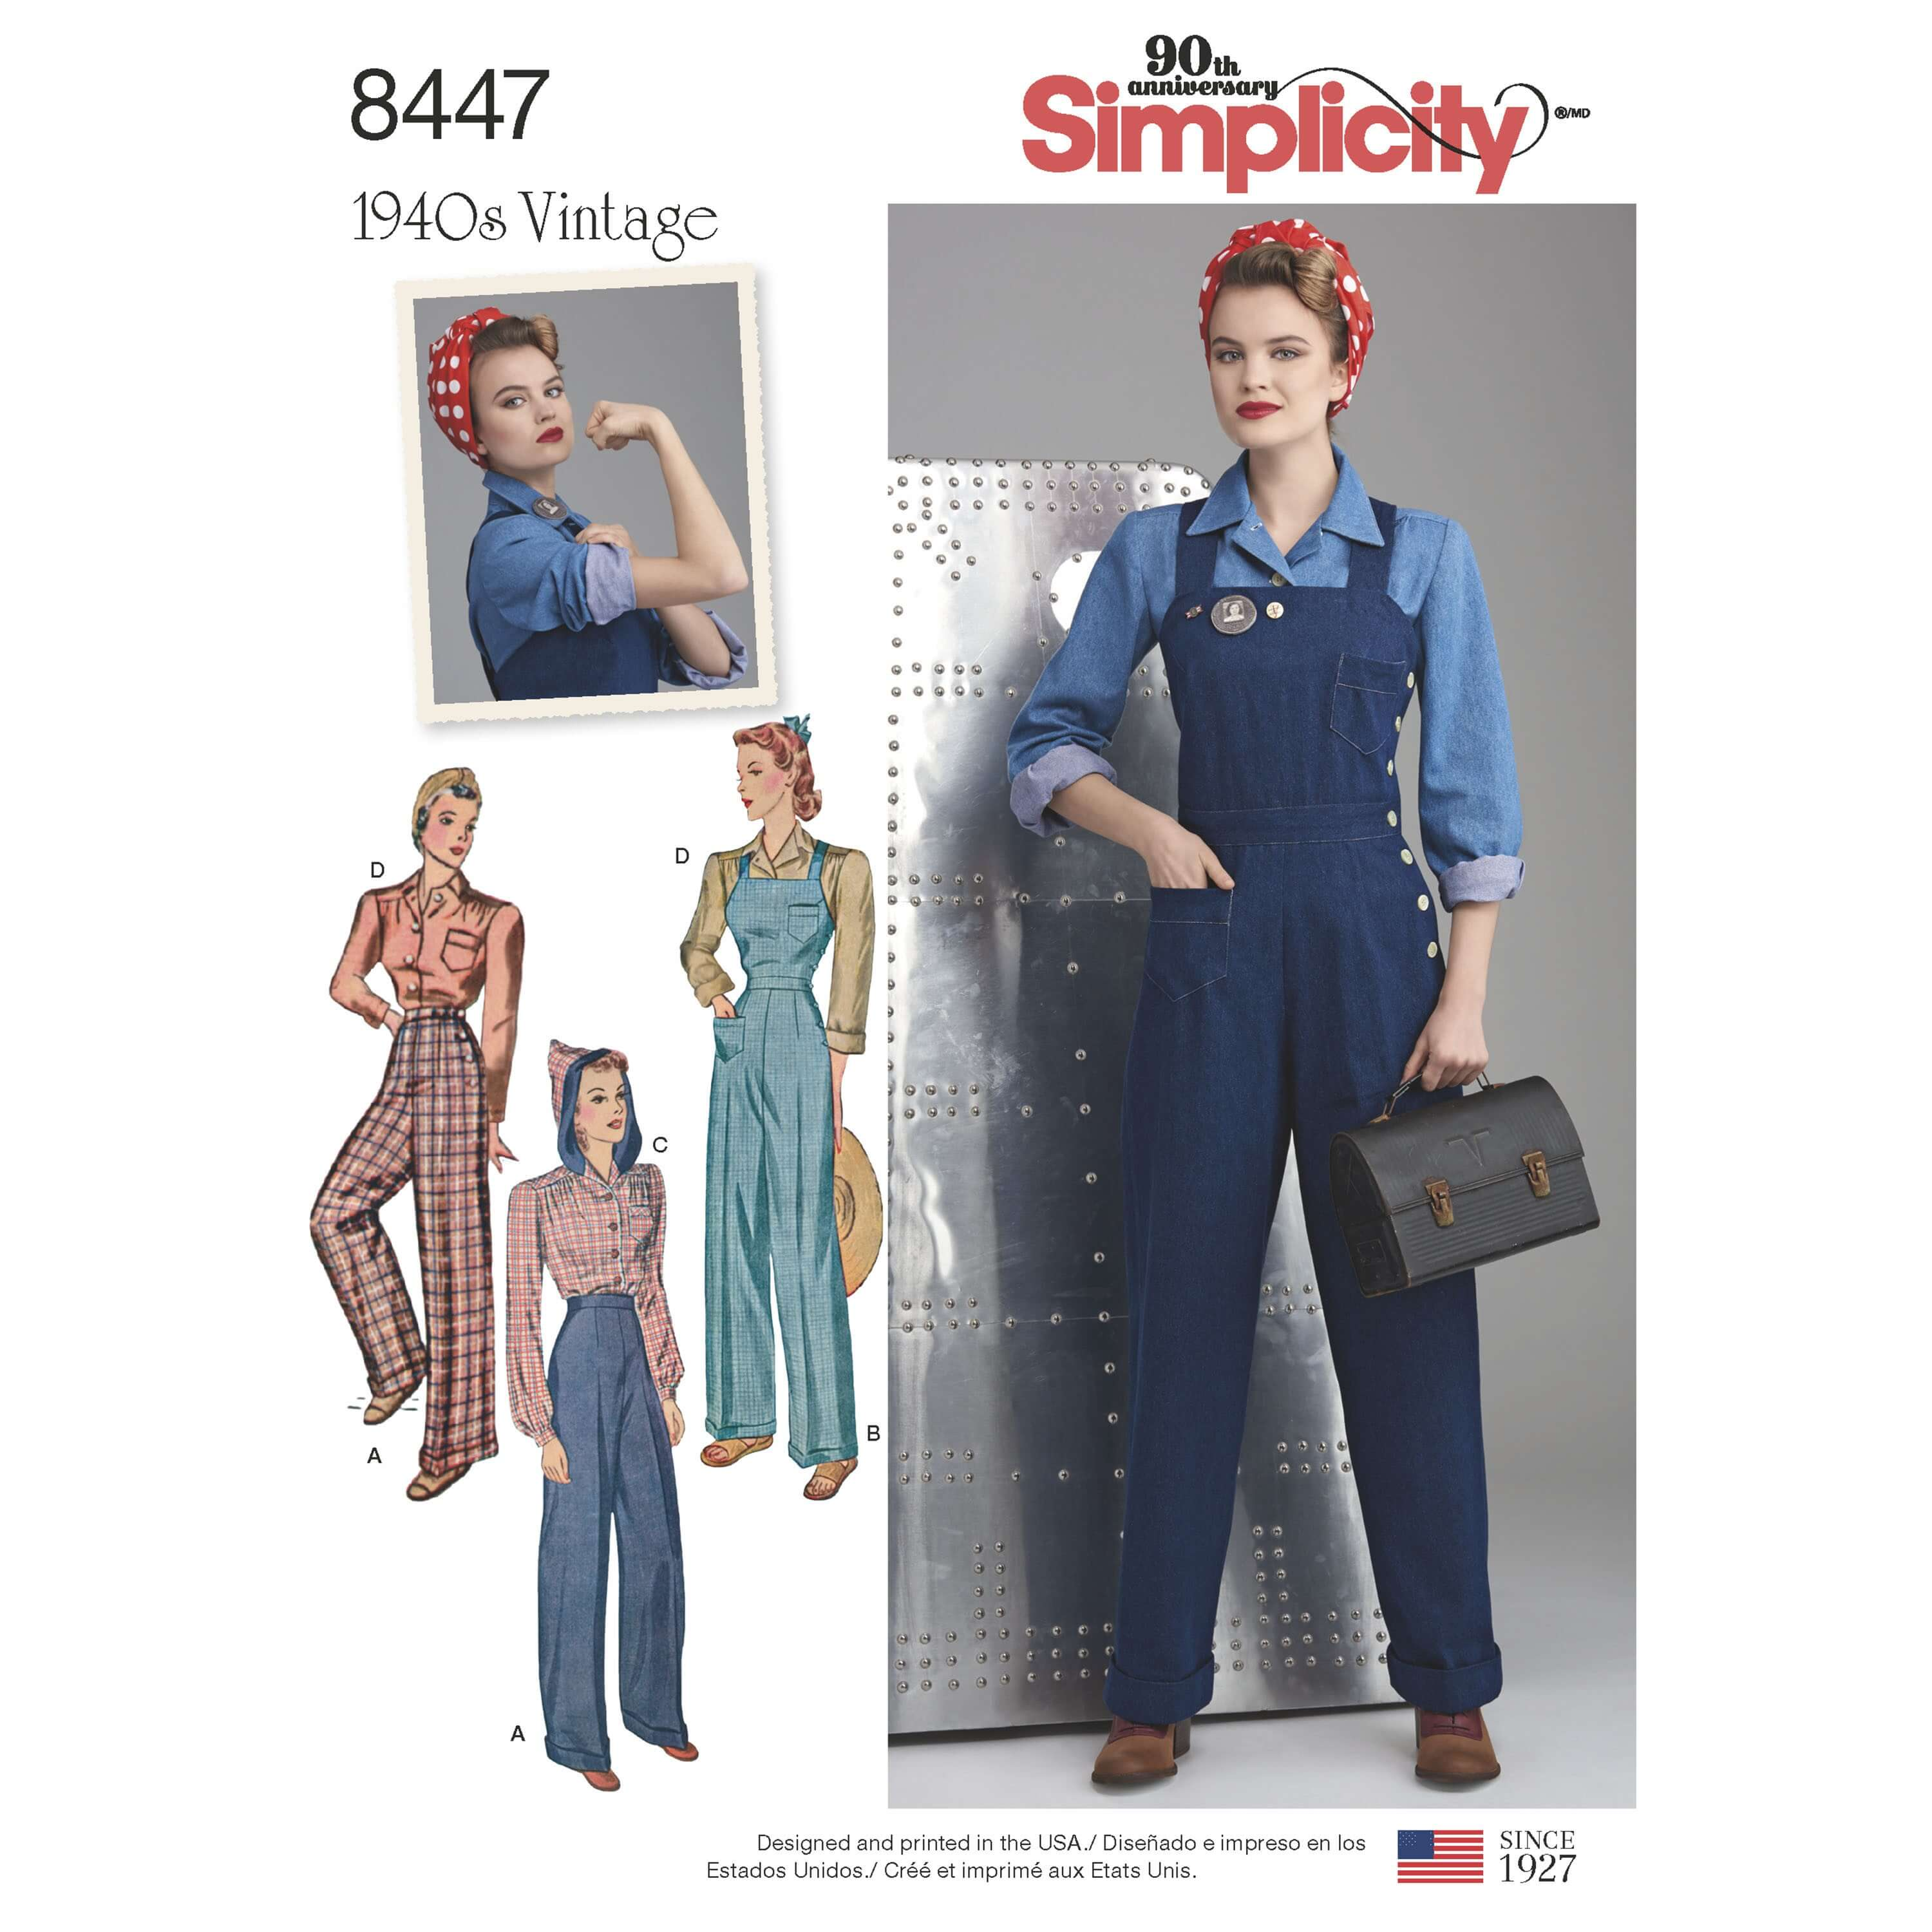 Simplicity Sewing Pattern 8447 Women's Vintage 1940s Overalls Trousers Blouses